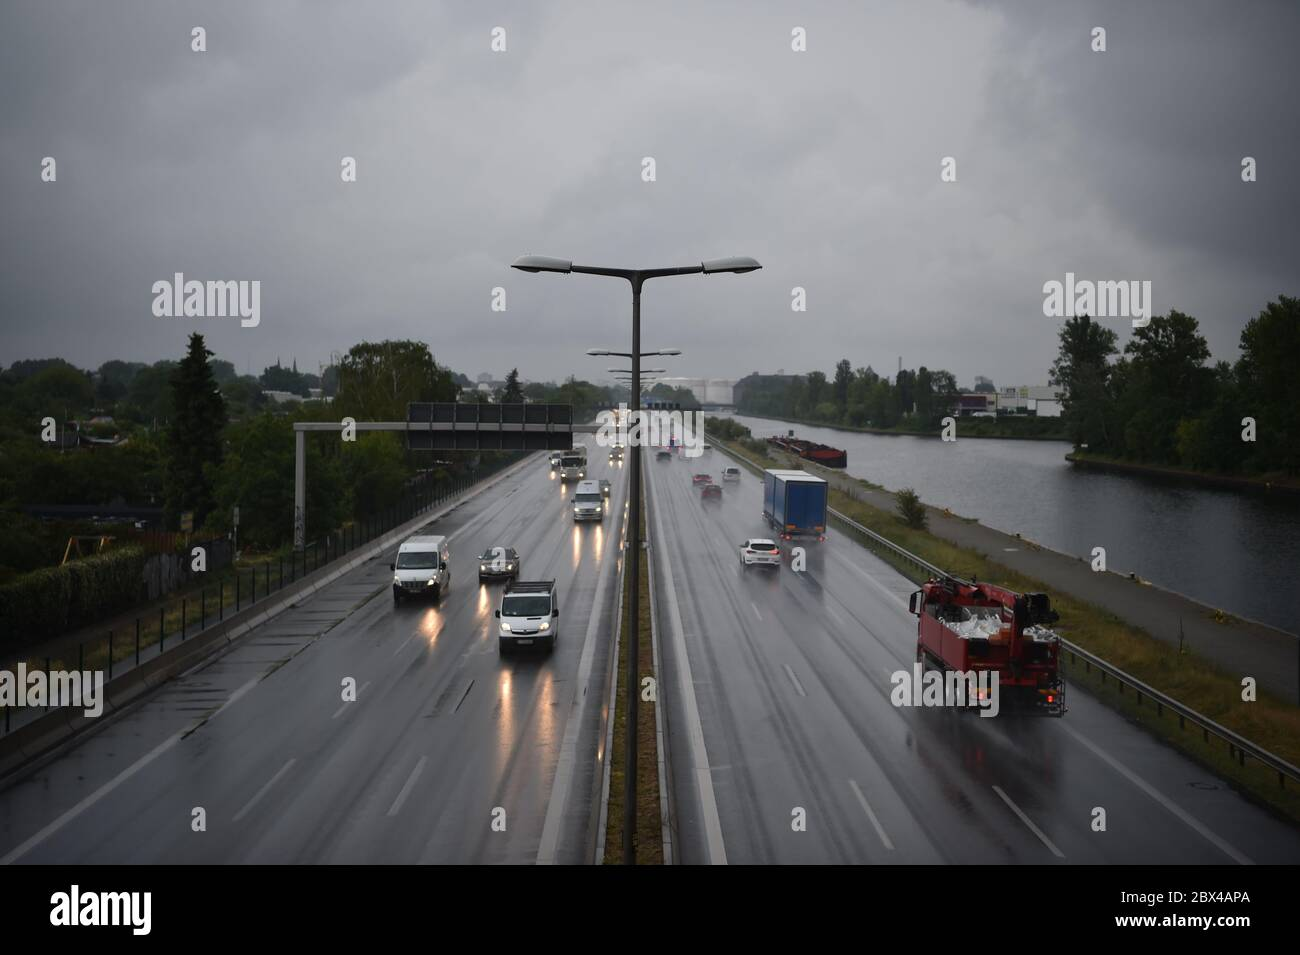 Berlin, Germany. 05th June, 2020. Vehicles drive in the rain on the A100 motorway next to the Westhafen Canal. Credit: Sven Braun/dpa/Alamy Live News Stock Photo